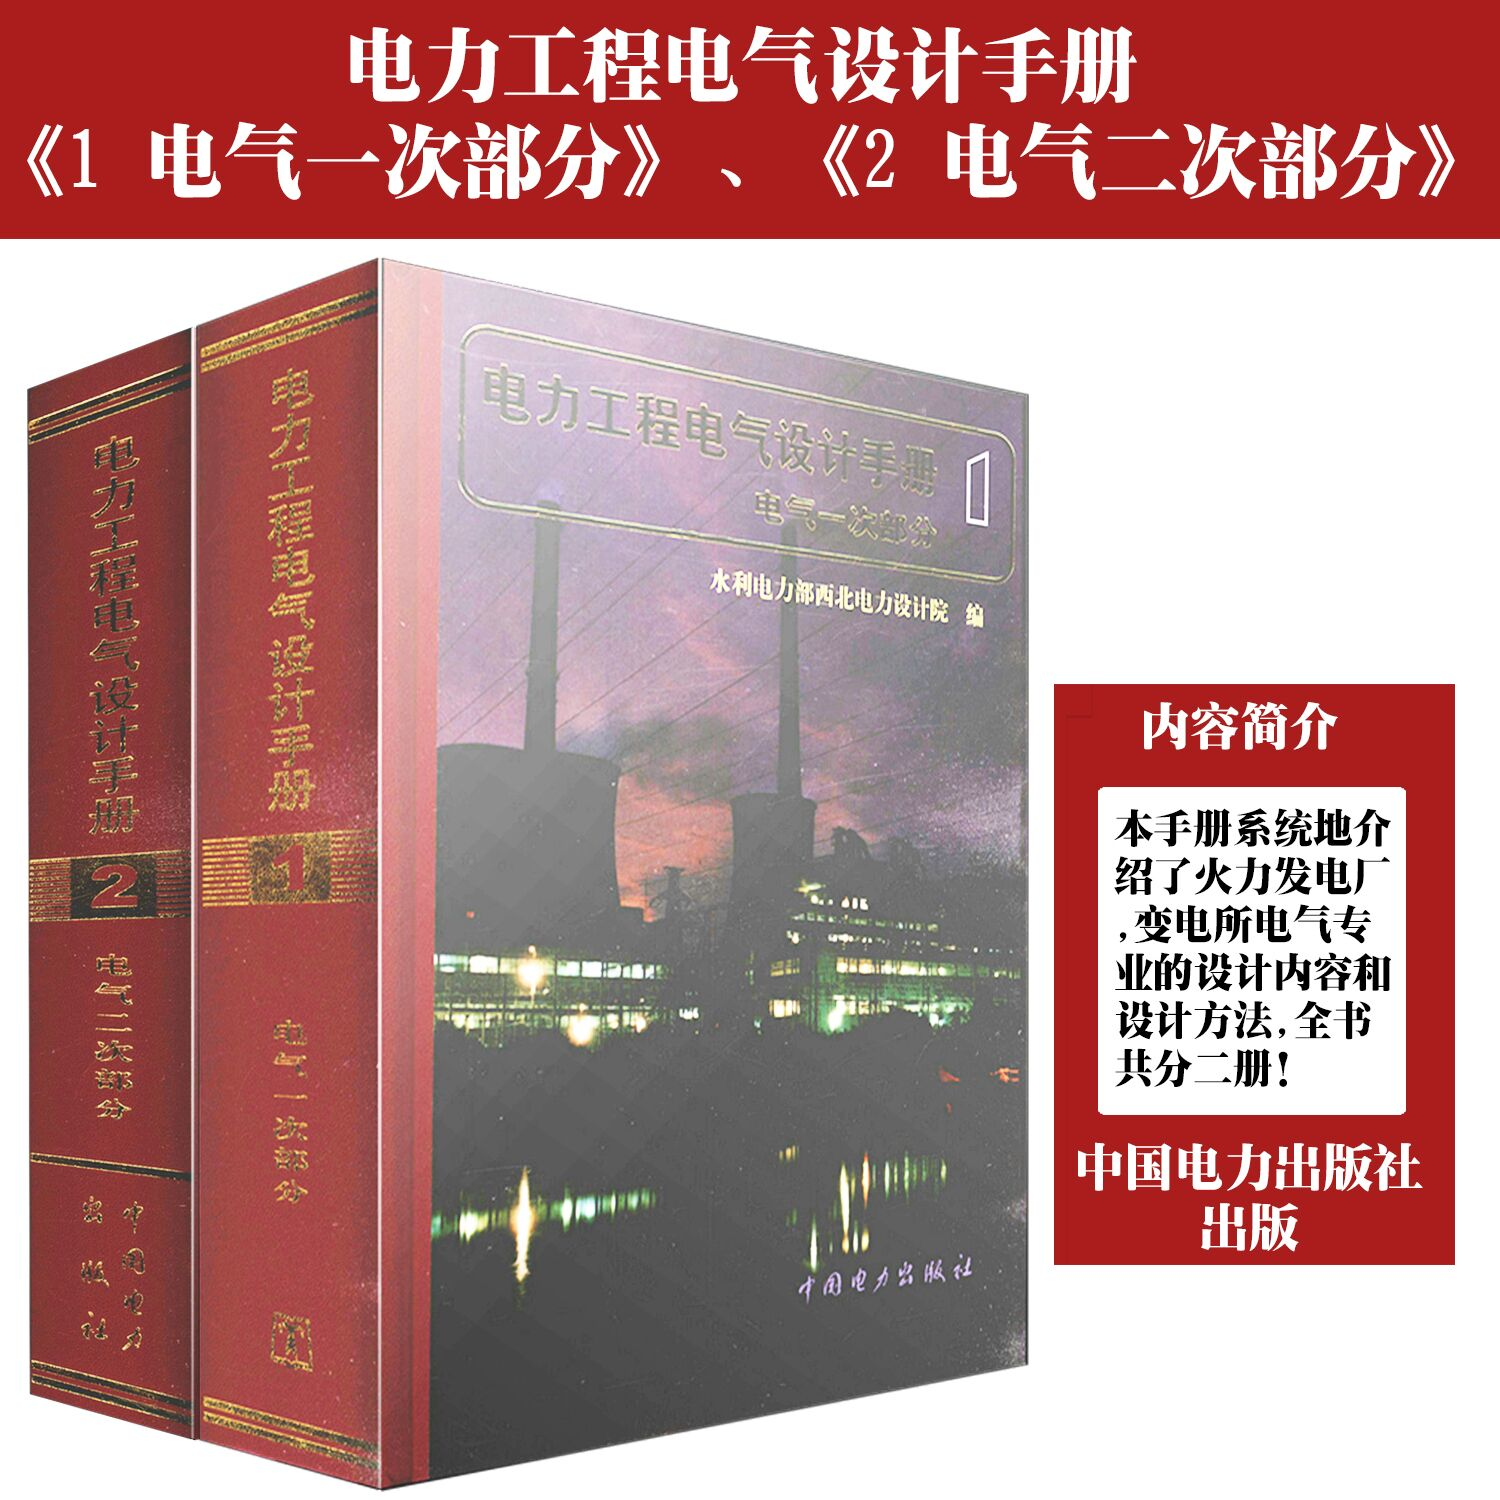 Library of electrical power engineering design manual (once part of the electrical 、 electrical secondary part) books full set of two of this The second part of the electrical//electrical power engineering design manual 2